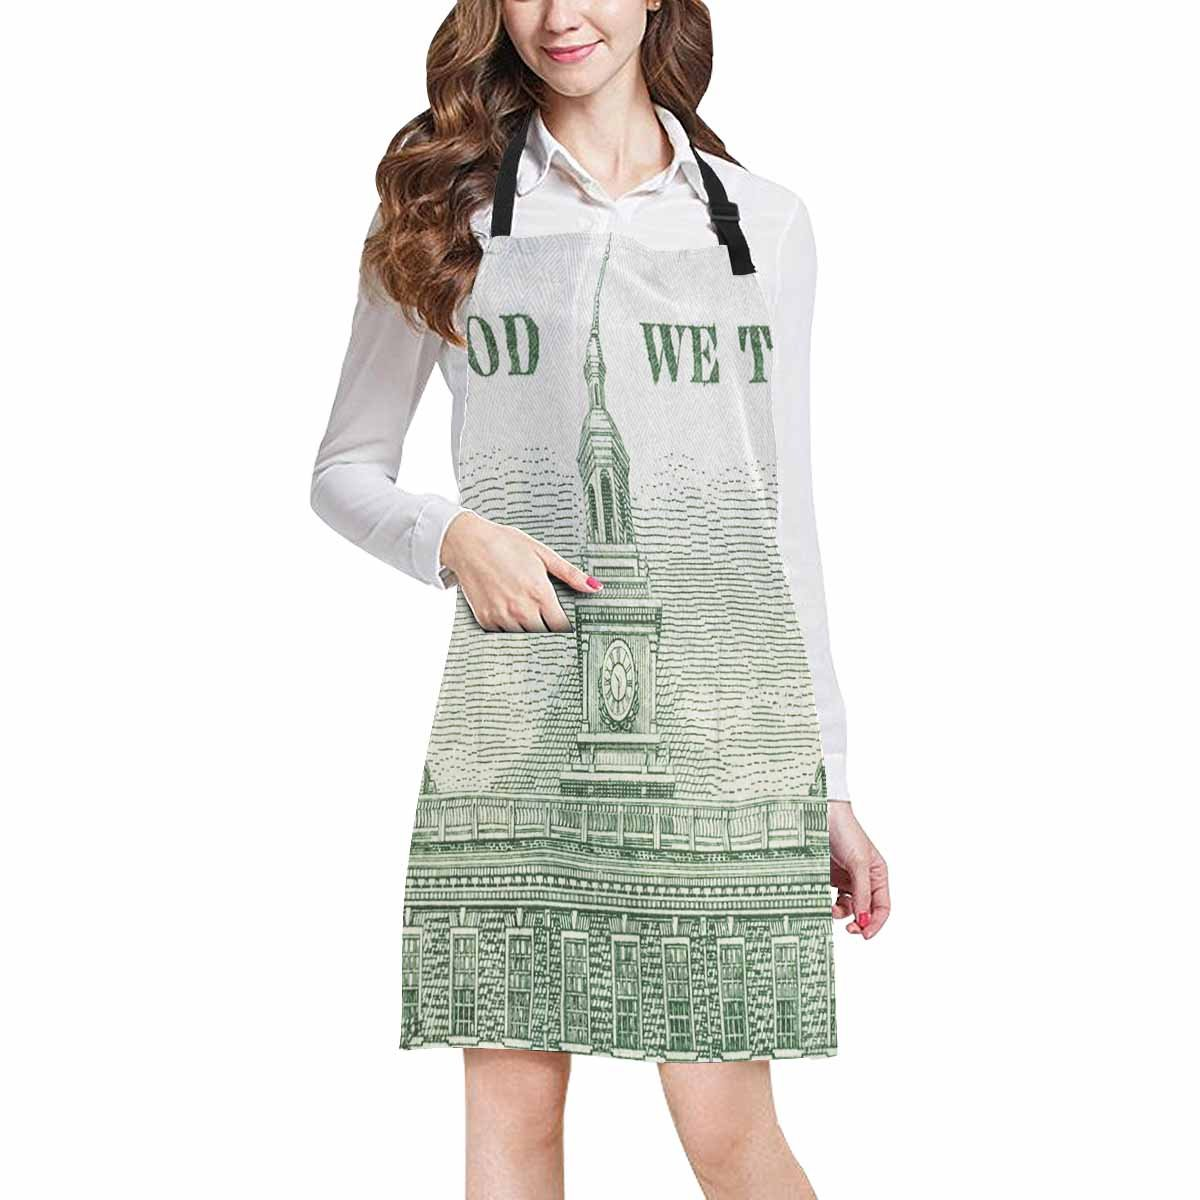 Hatiart In We Trust And Independence Hall With Us Dollar Bill Chef Kitchen Apron Adjustable Strap Waist Ties Front Pockets Perfect For Cooking Baking Barbequing Walmart Canada